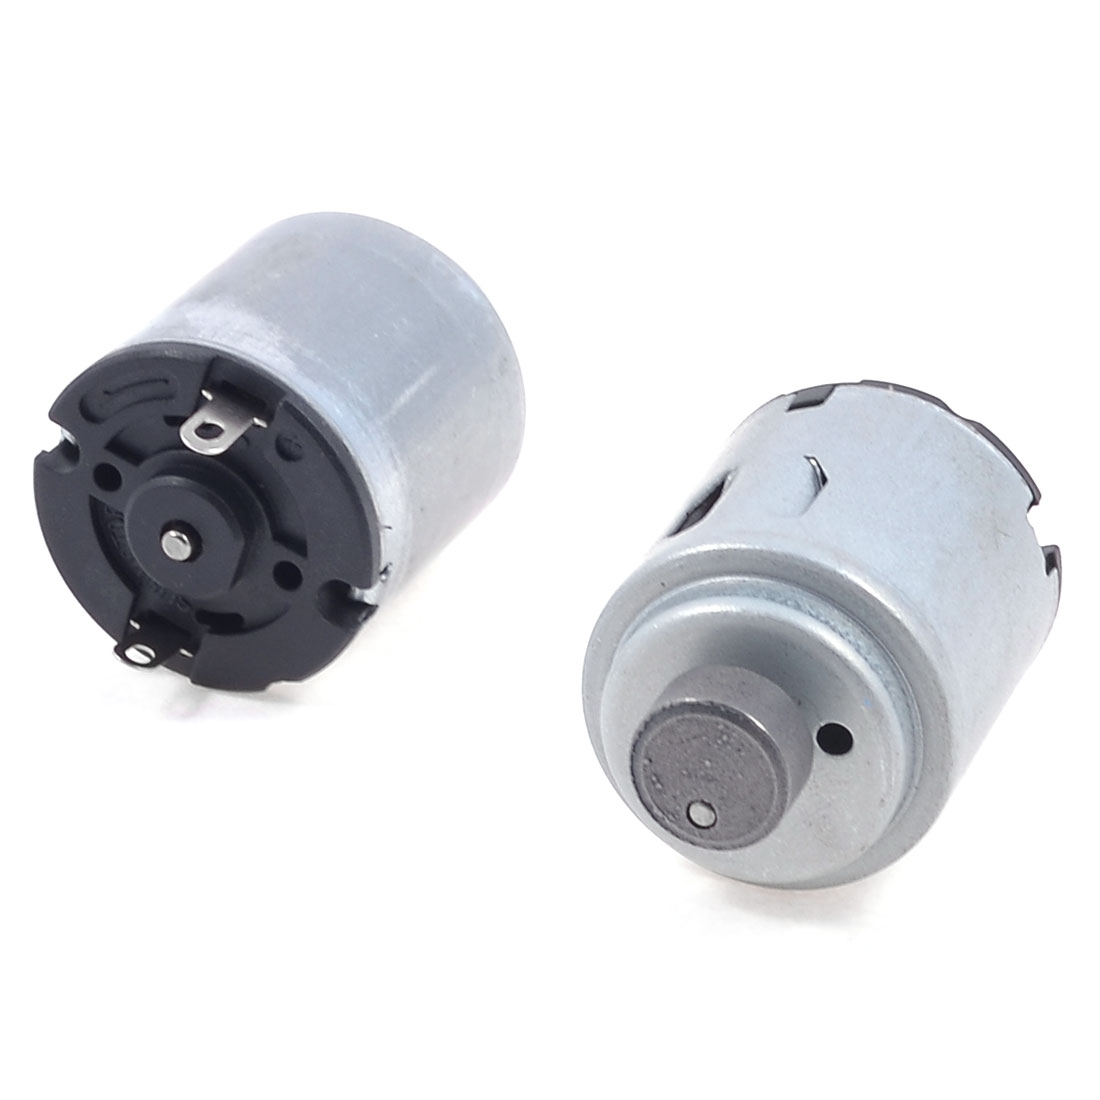 2 Pcs DC 3-12V Magnetic Micro Vibration Motor R260 for Model Airplane Toys